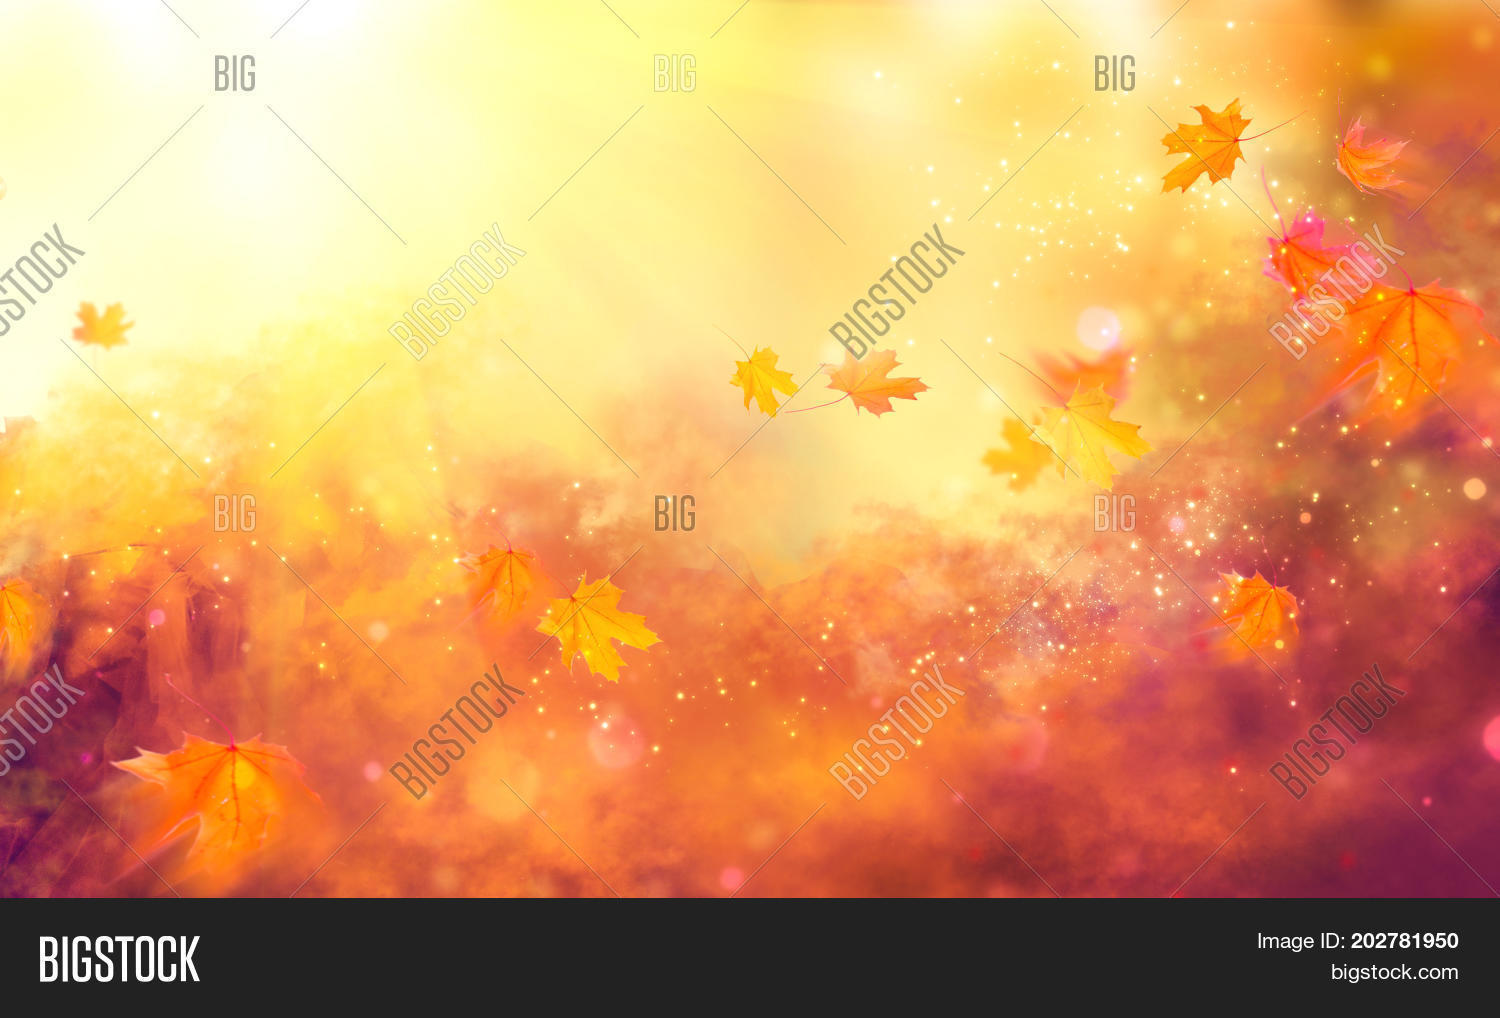 autumn background image photo free trial bigstock